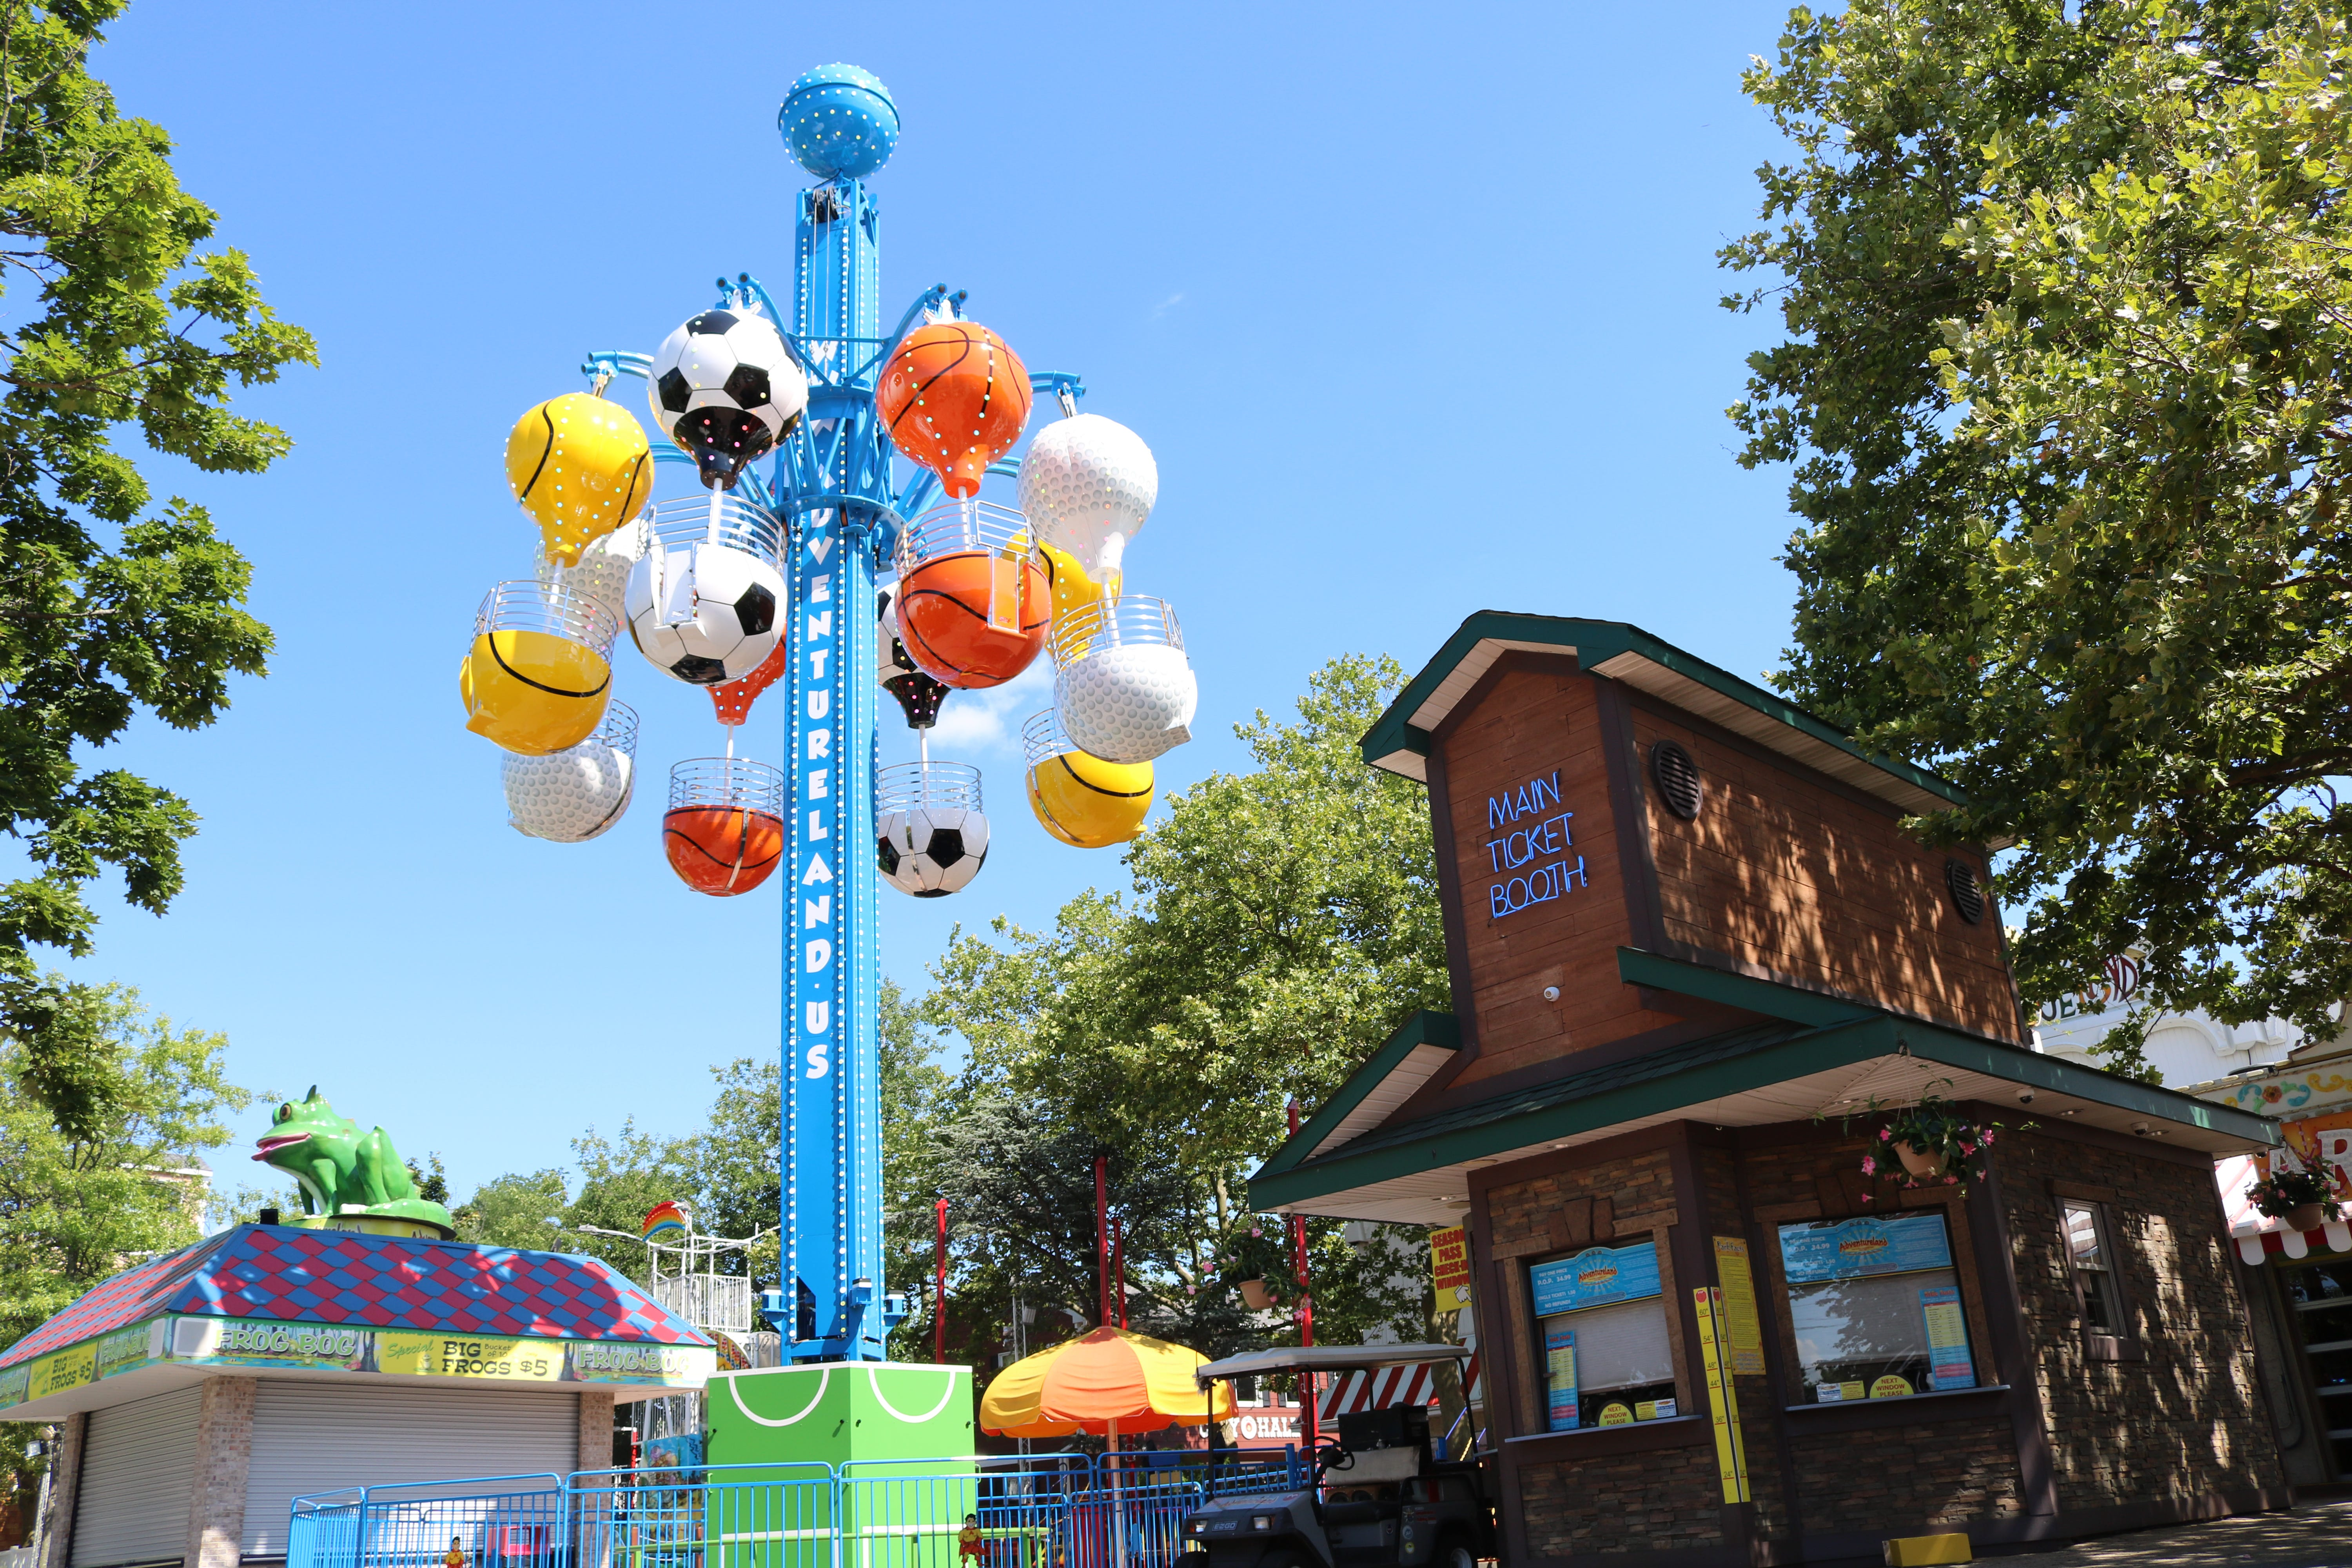 The Sports Tower is a new family ride at Adventureland.